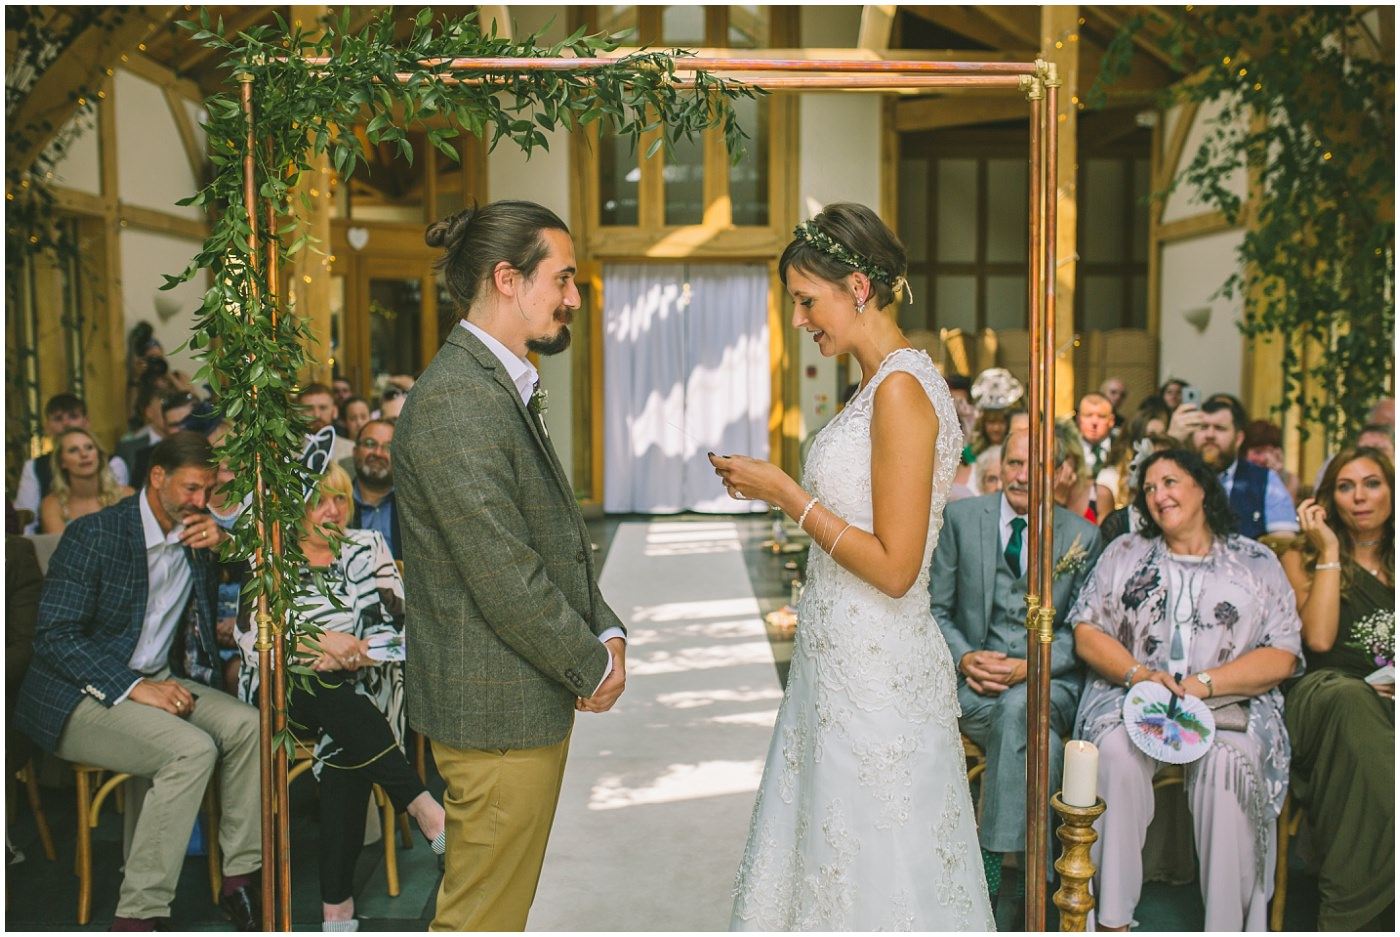 Bride reads her vows during wedding ceremony